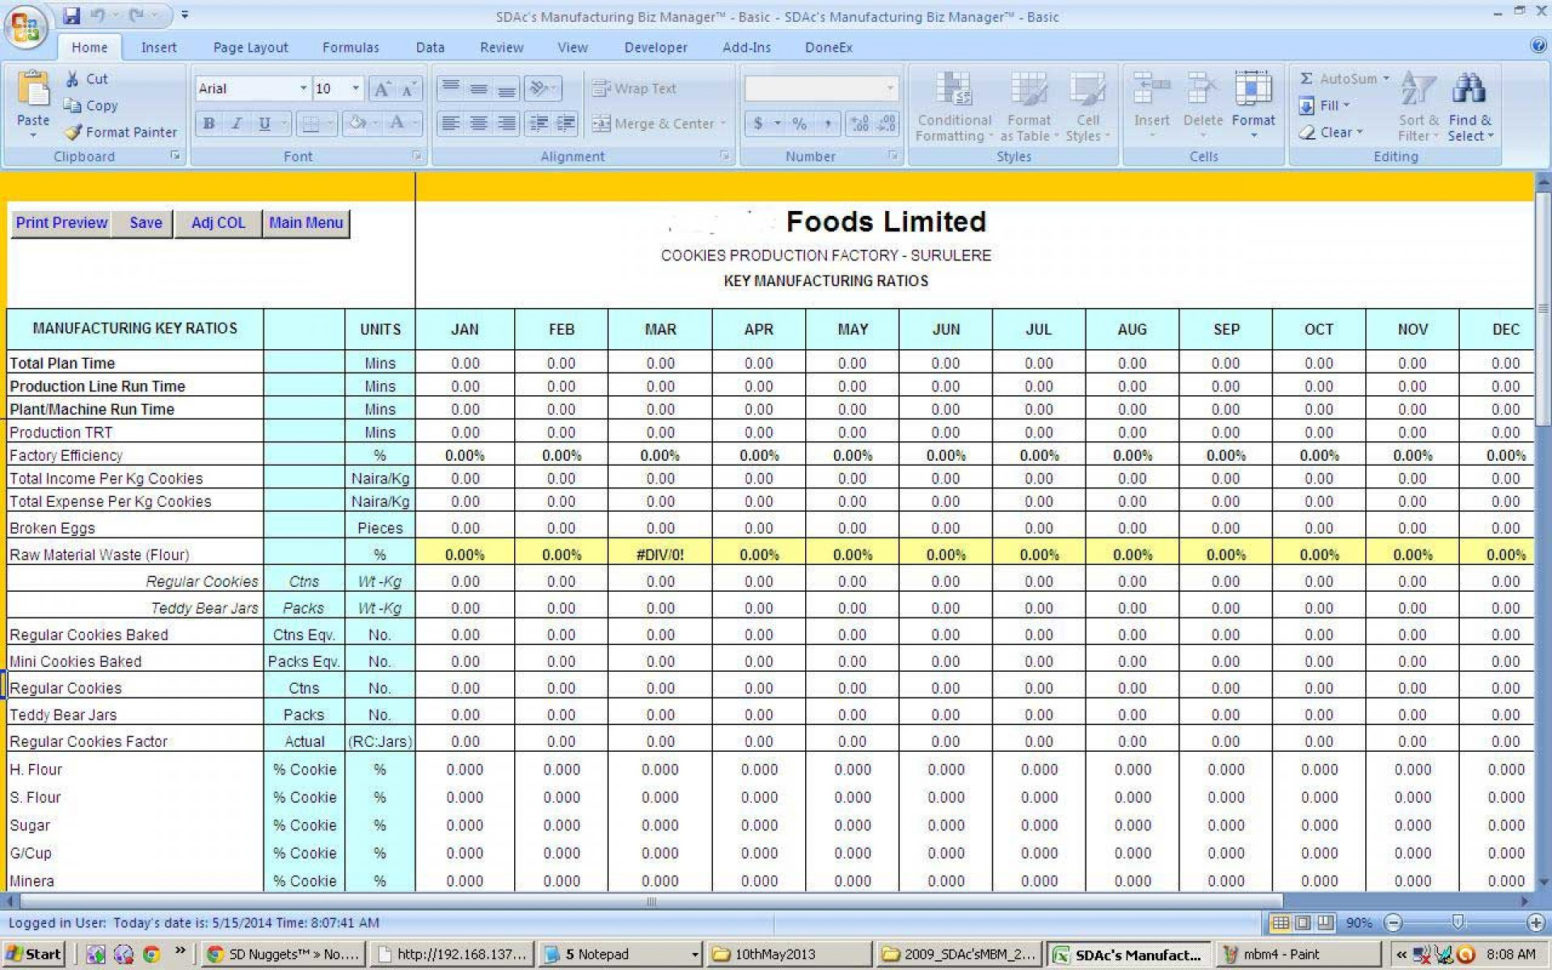 How To Track Employee Performance Spreadsheet For 006 Employee Performance Tracking Template Excel Tv Show Production